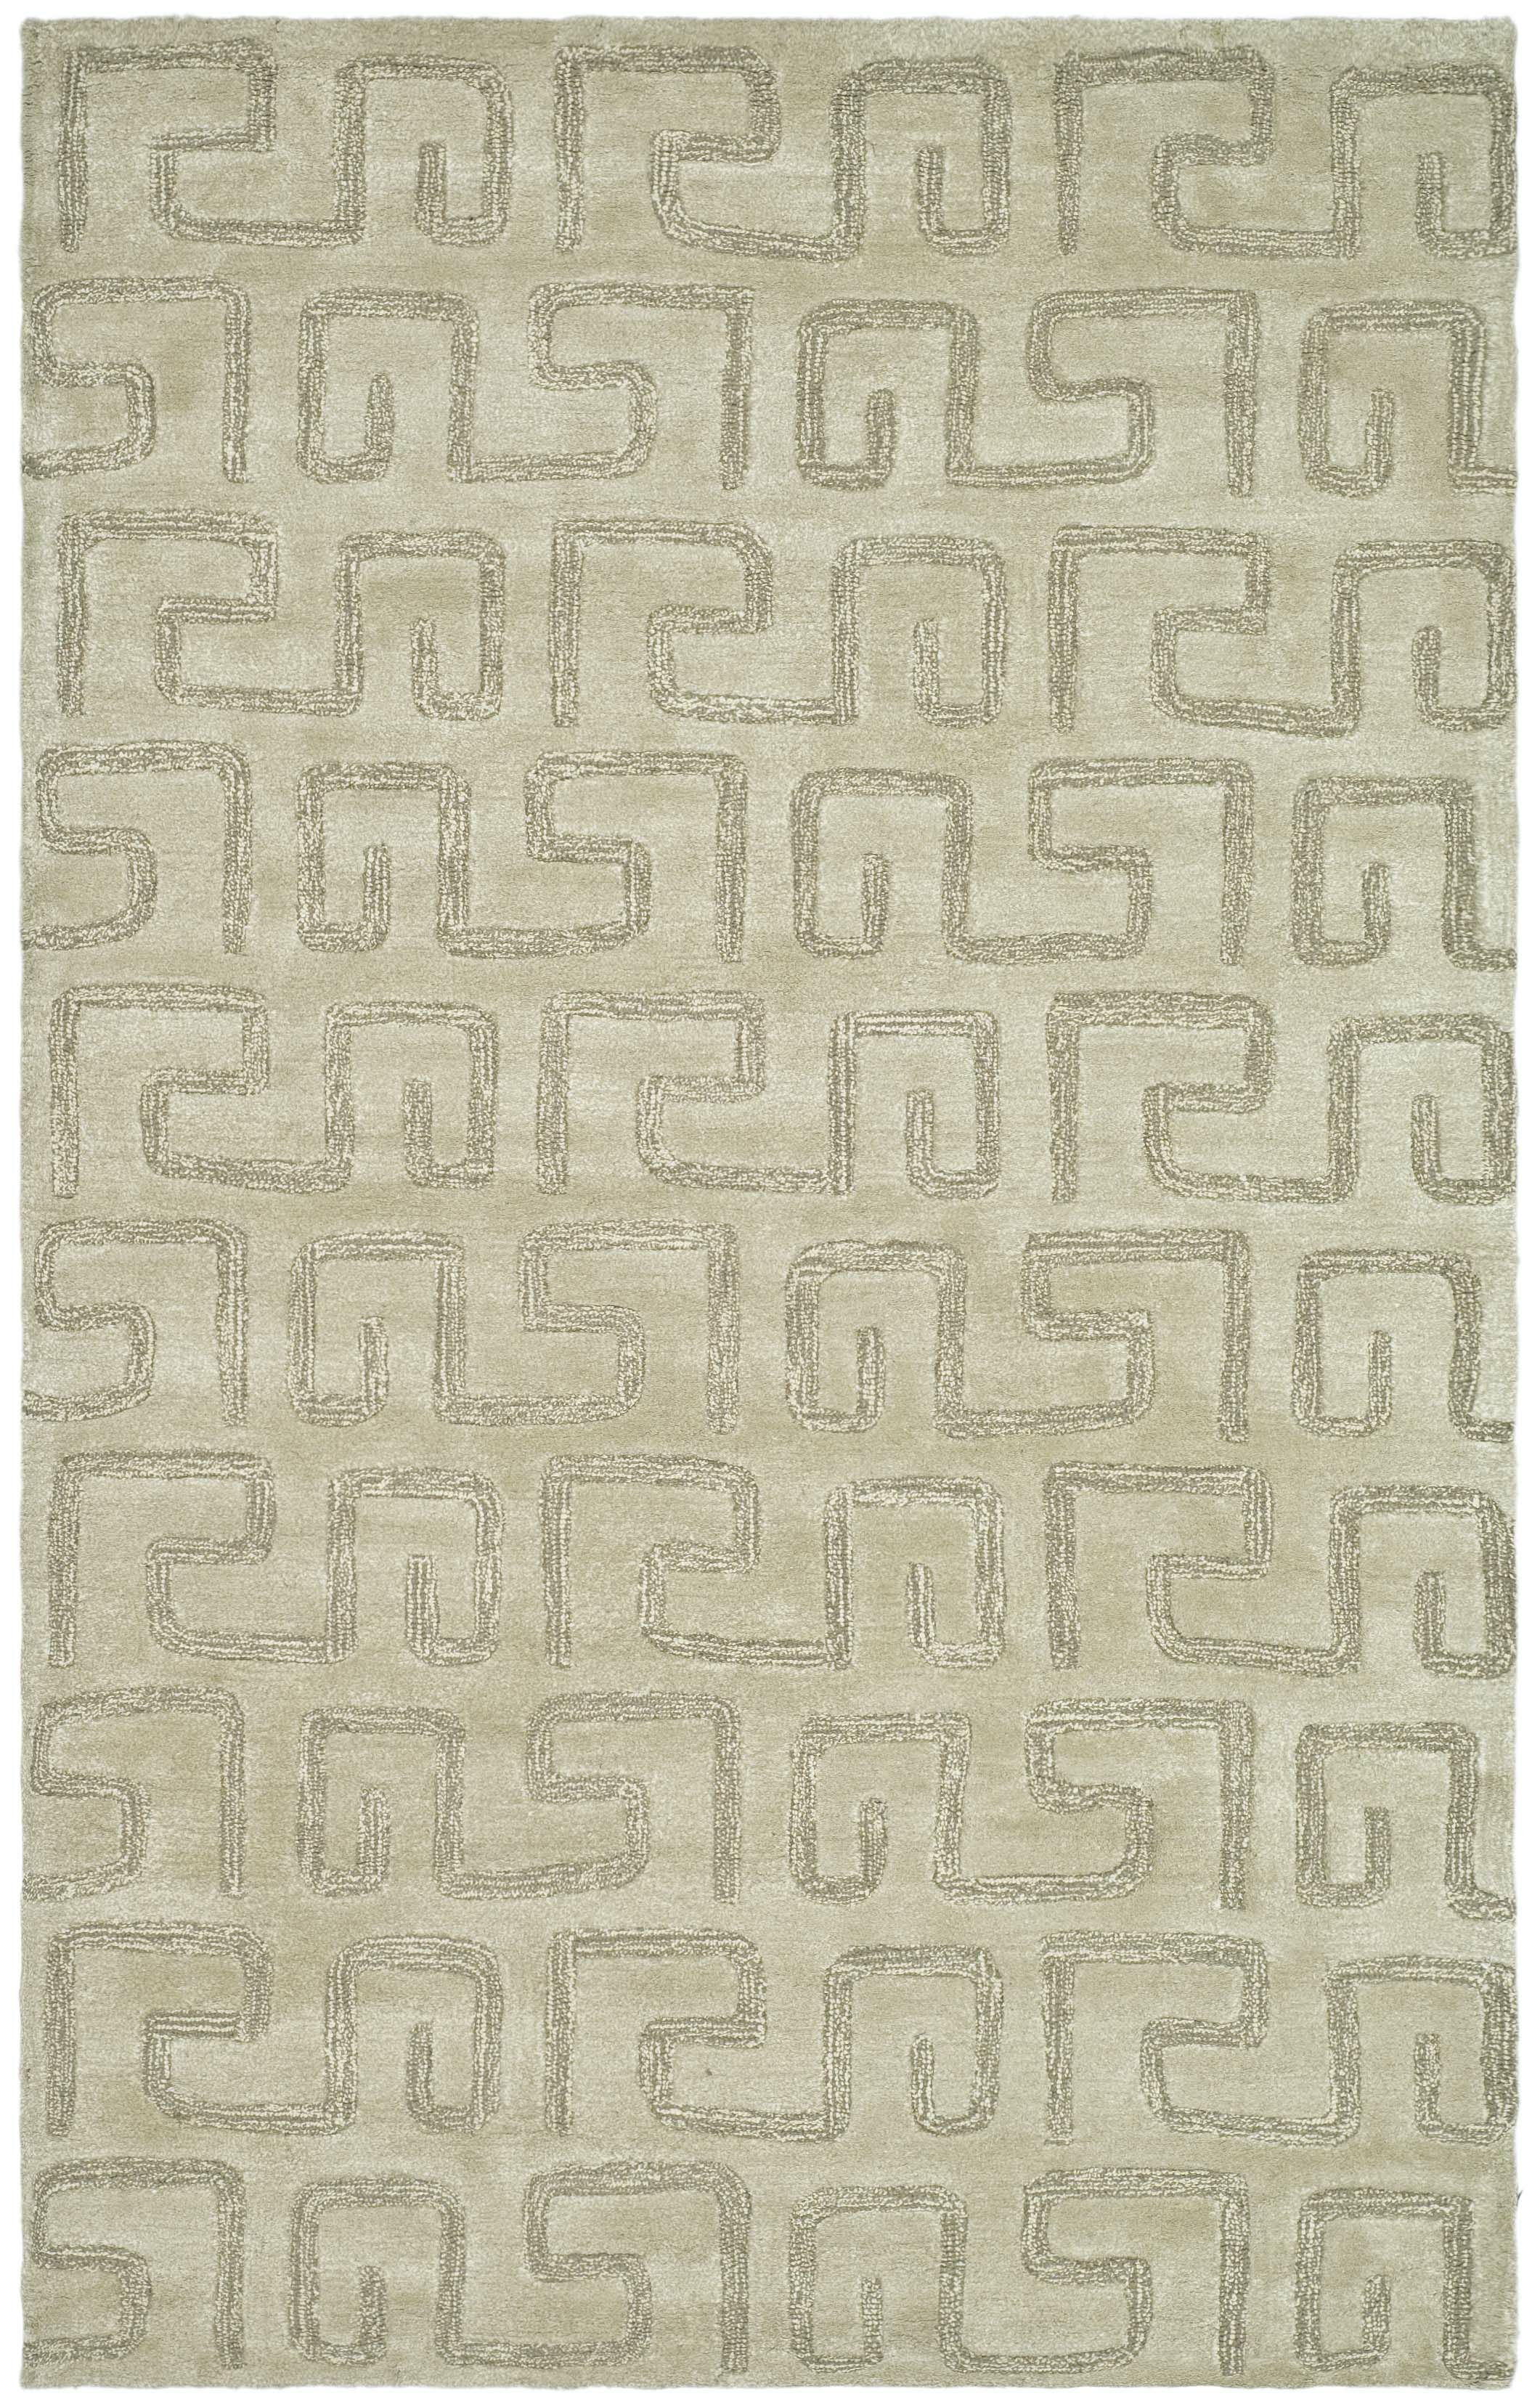 Armstrong Hand-Tufted Taupe Area Rug Rug Size: Rectangle 7'6